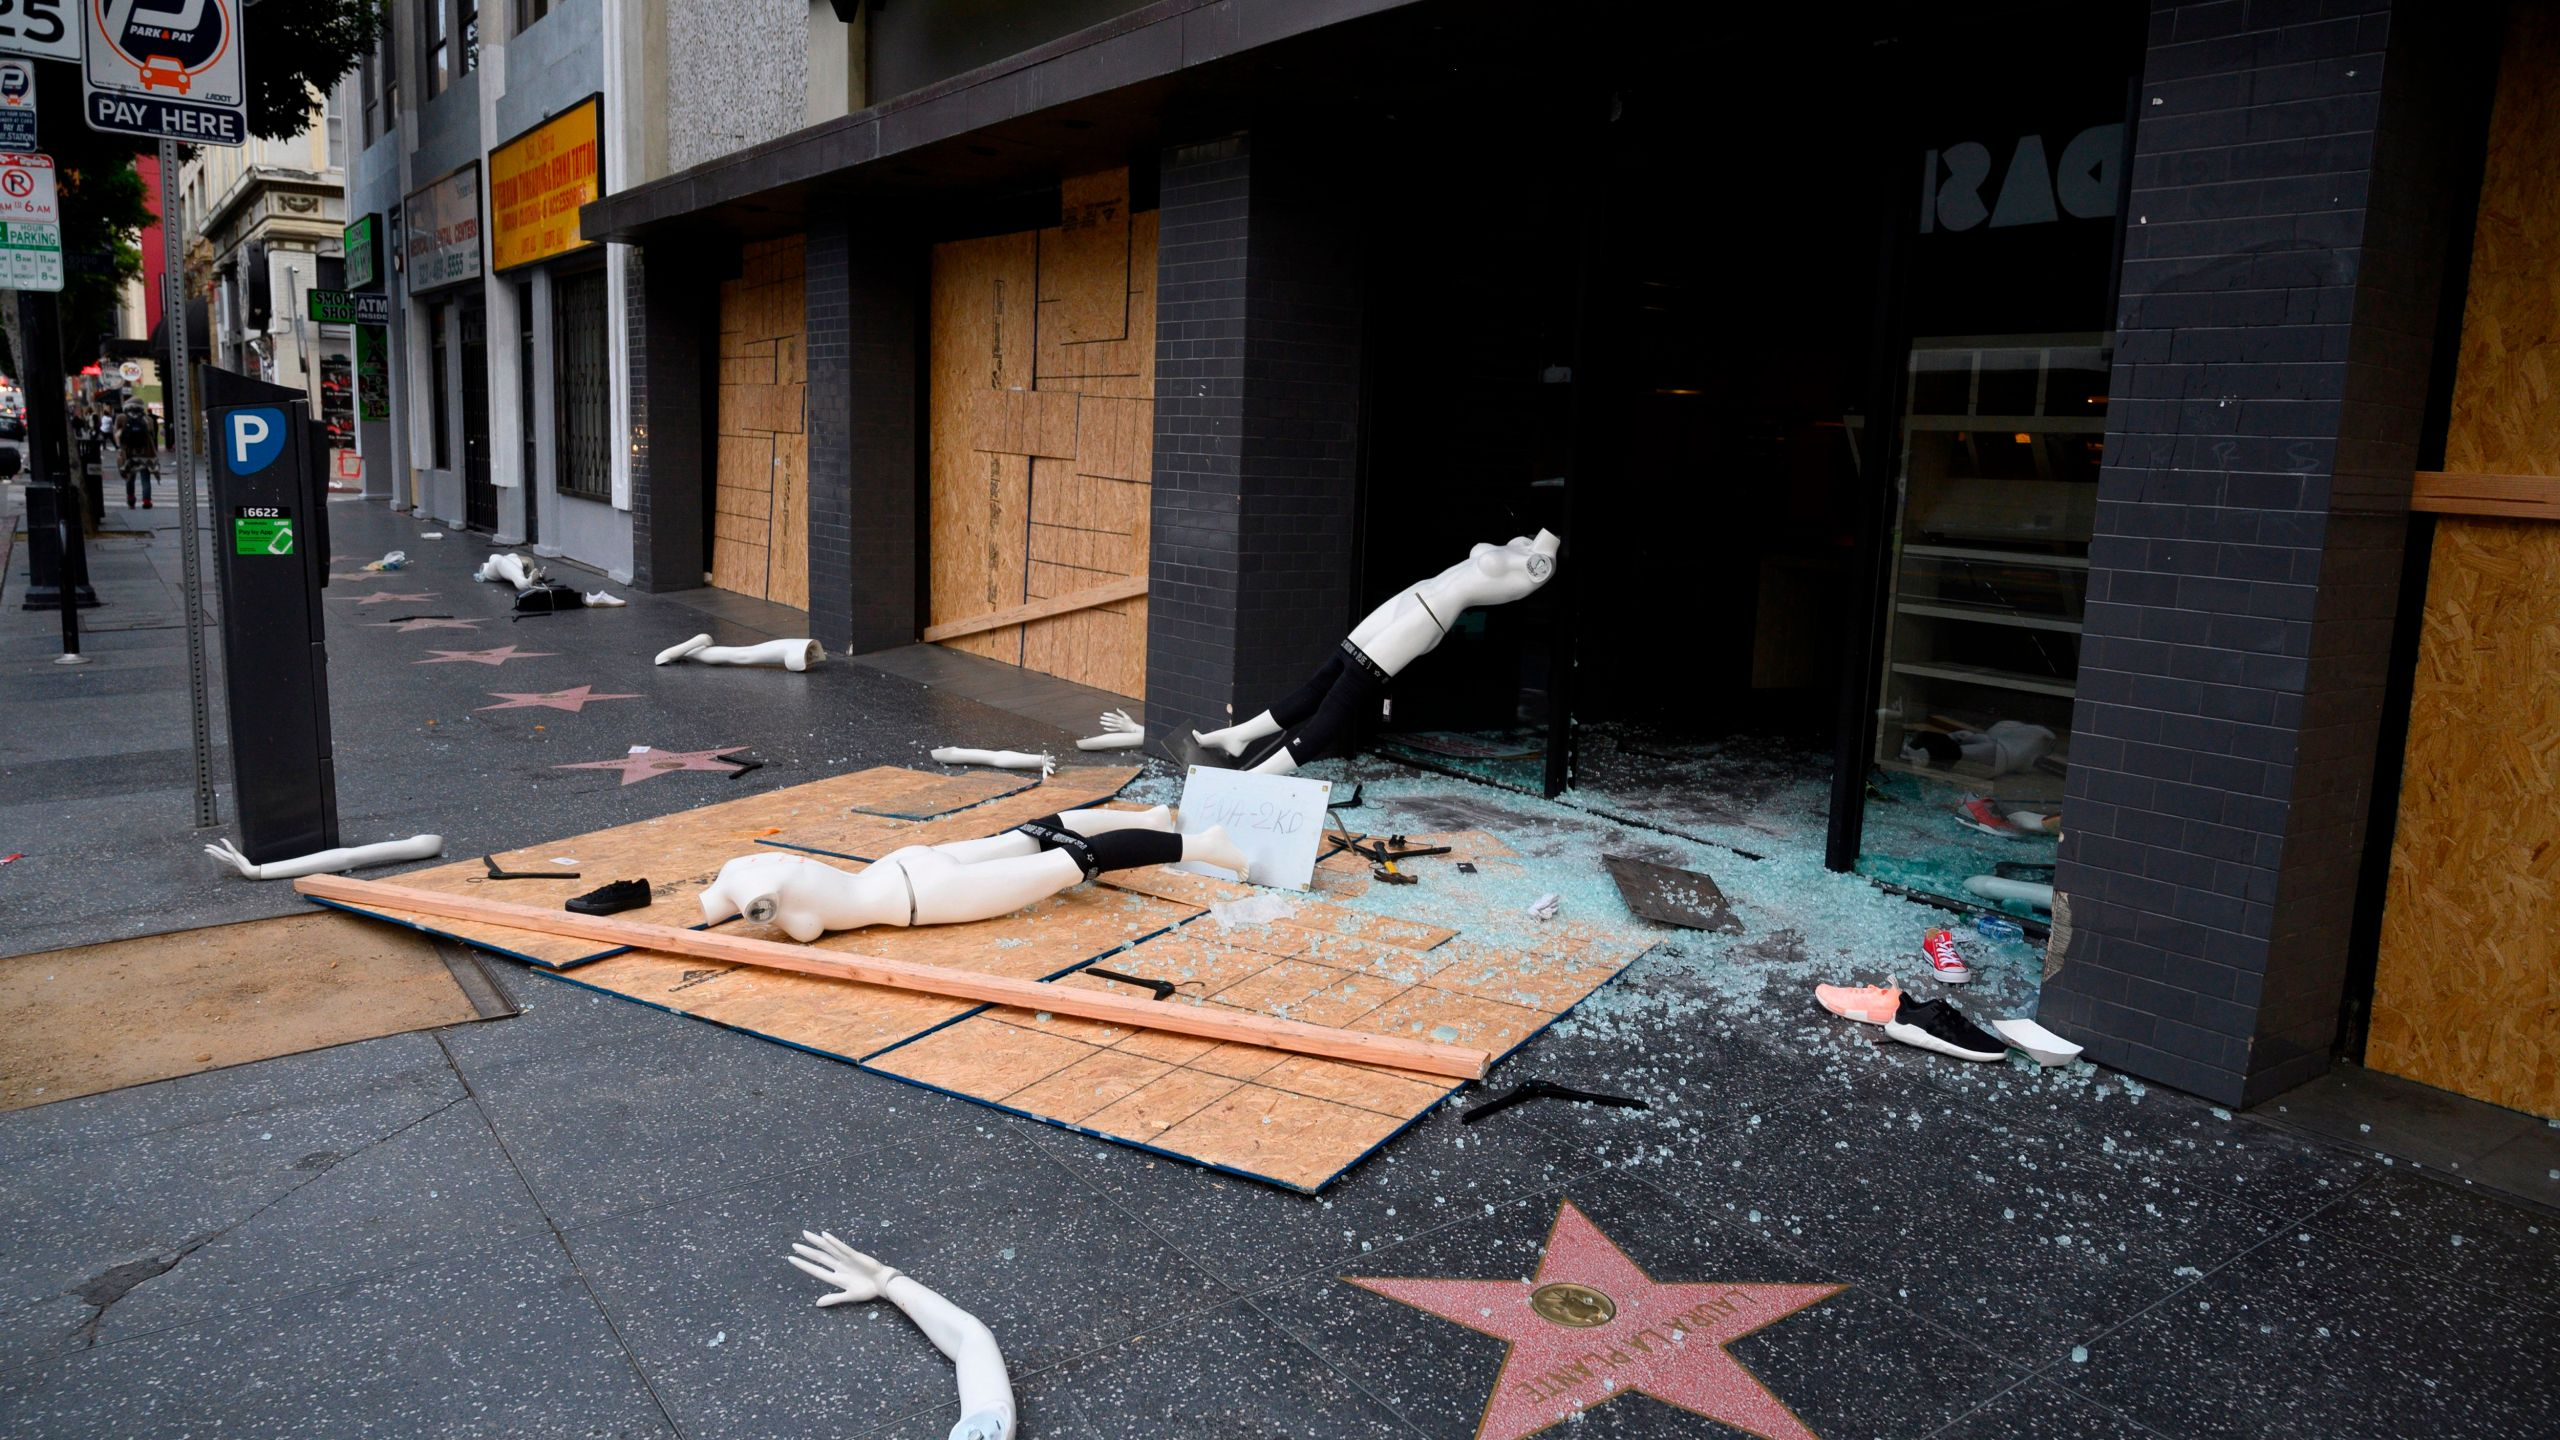 A mannequin is seen on the street after a store was broken into in Hollywood on June 1, 2020, after a third day of protests and looting in California. (ROBYN BECK/AFP via Getty Images)